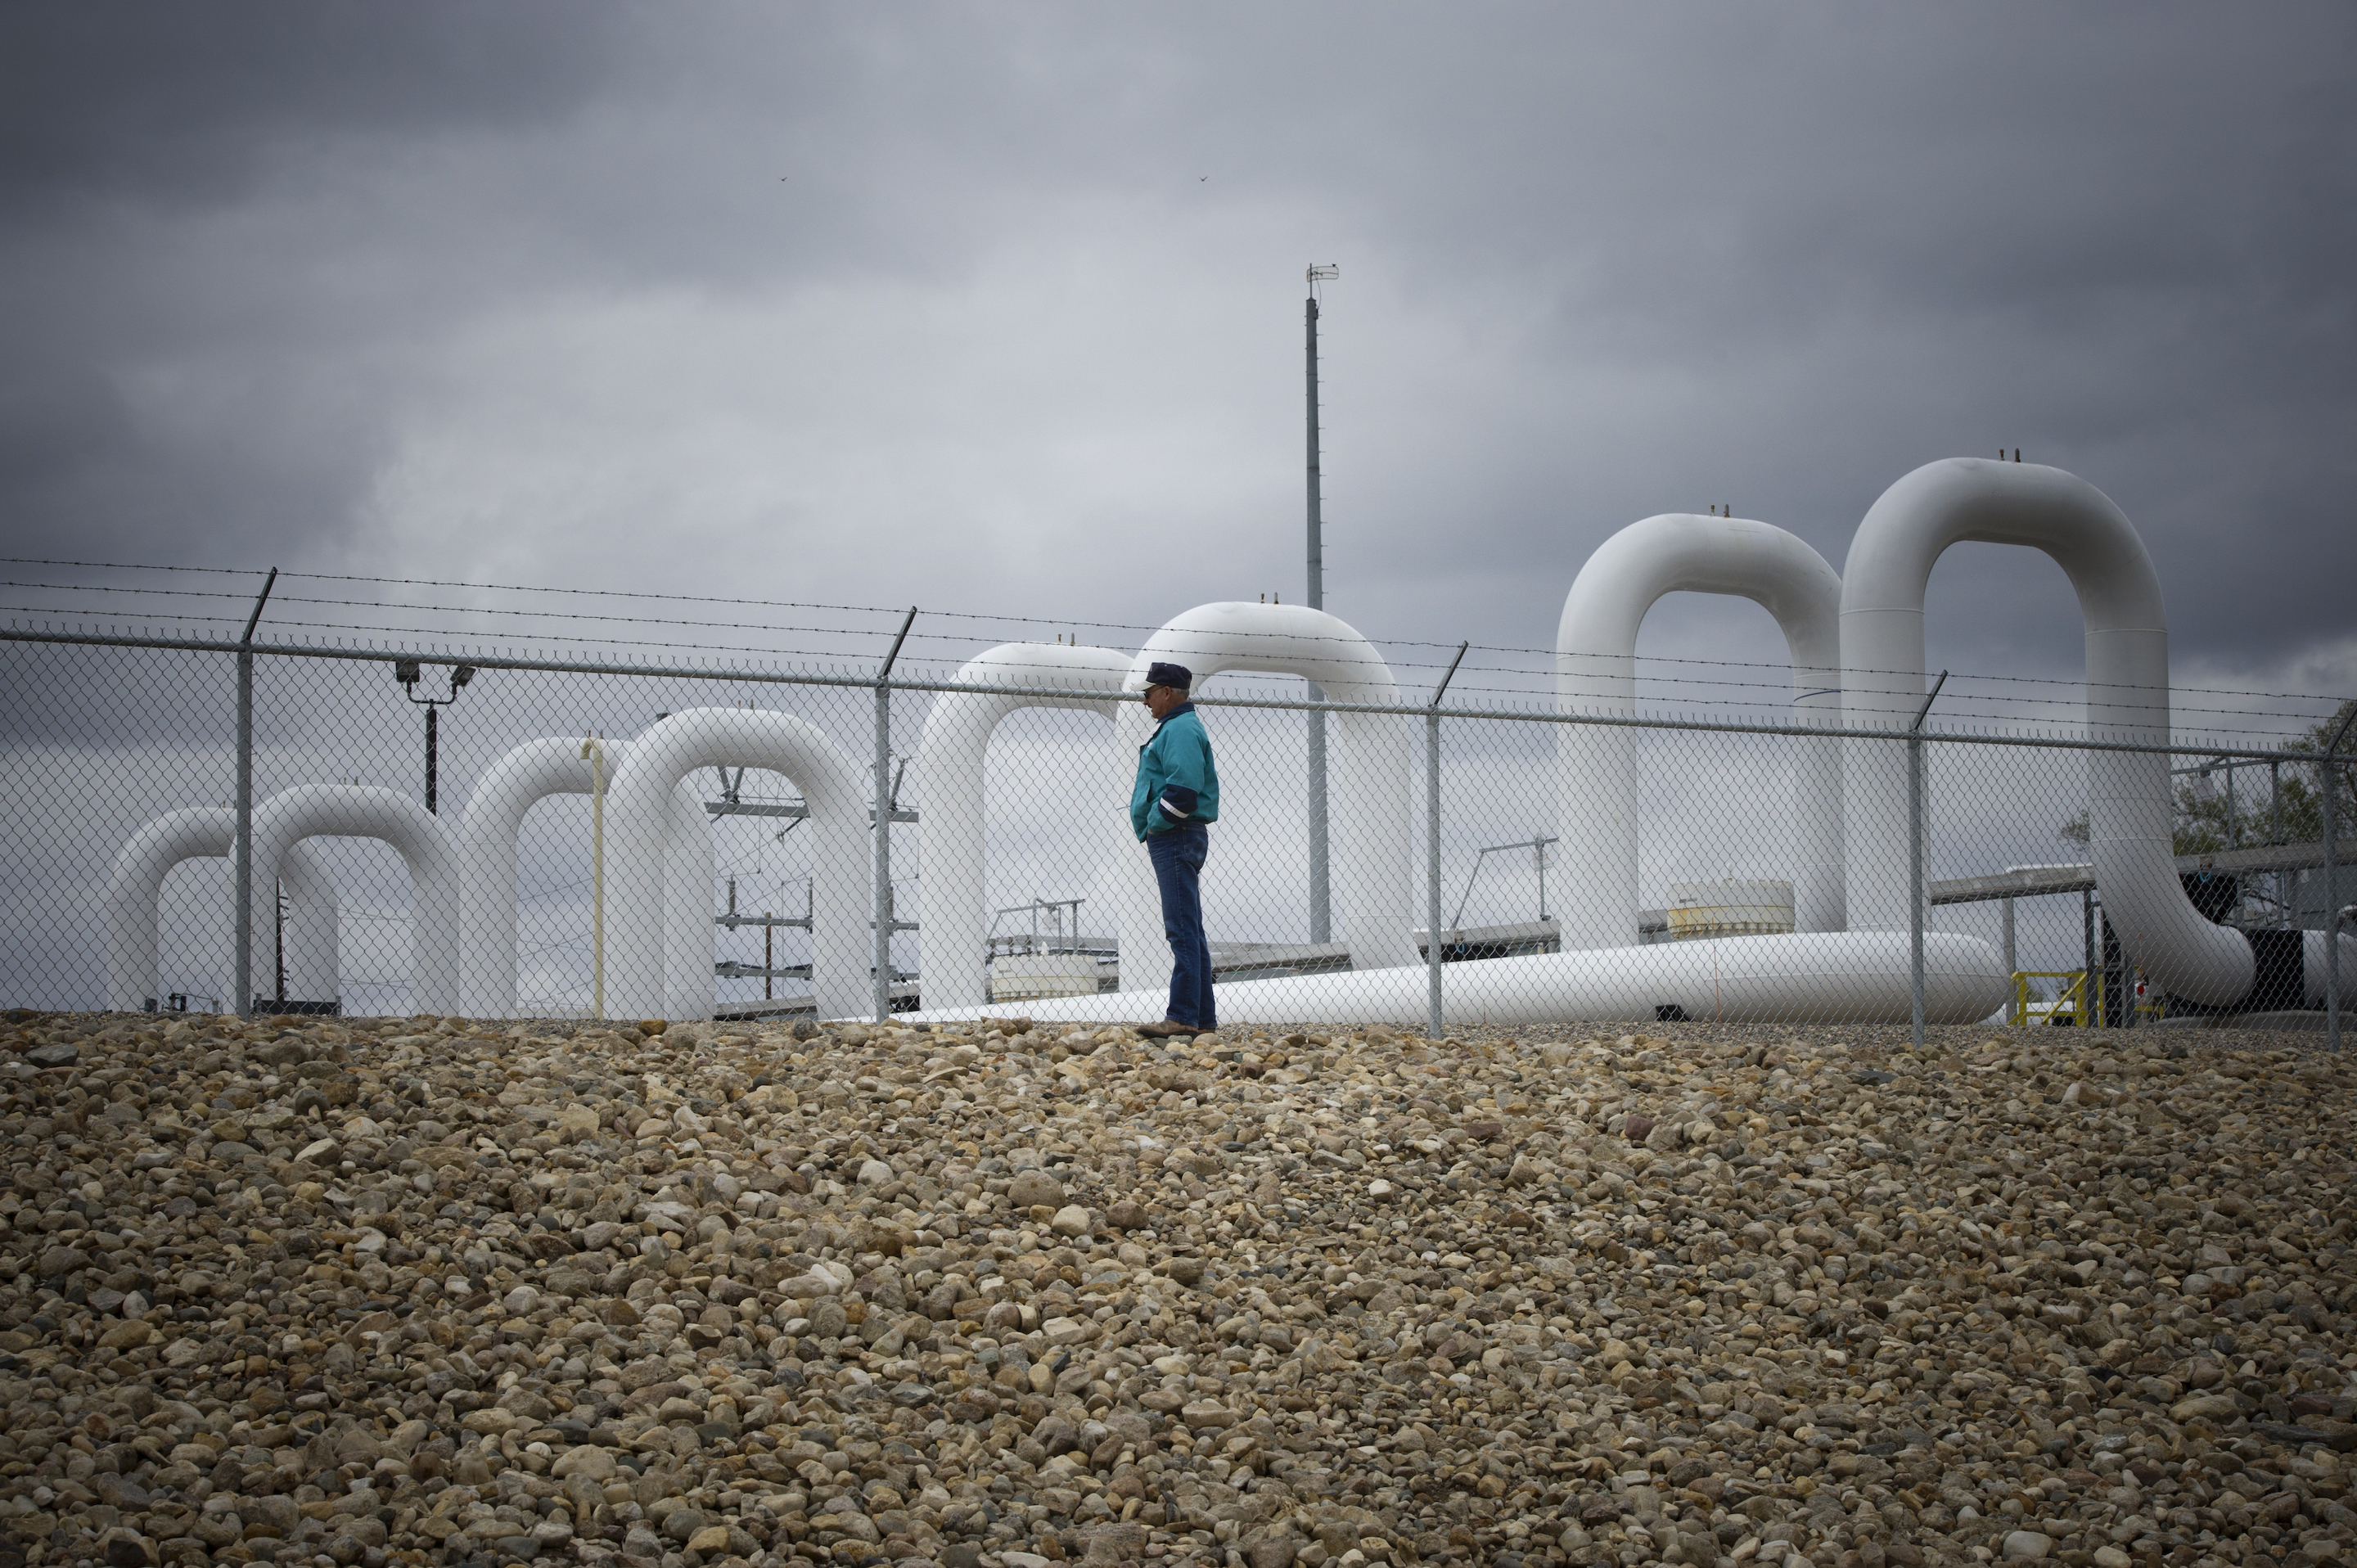 A pumping station along the Keystone pipeline outside Cogswell, N.D. Built in 2011, this week's major oil spill in North Dakota isn't the pipeline's first.